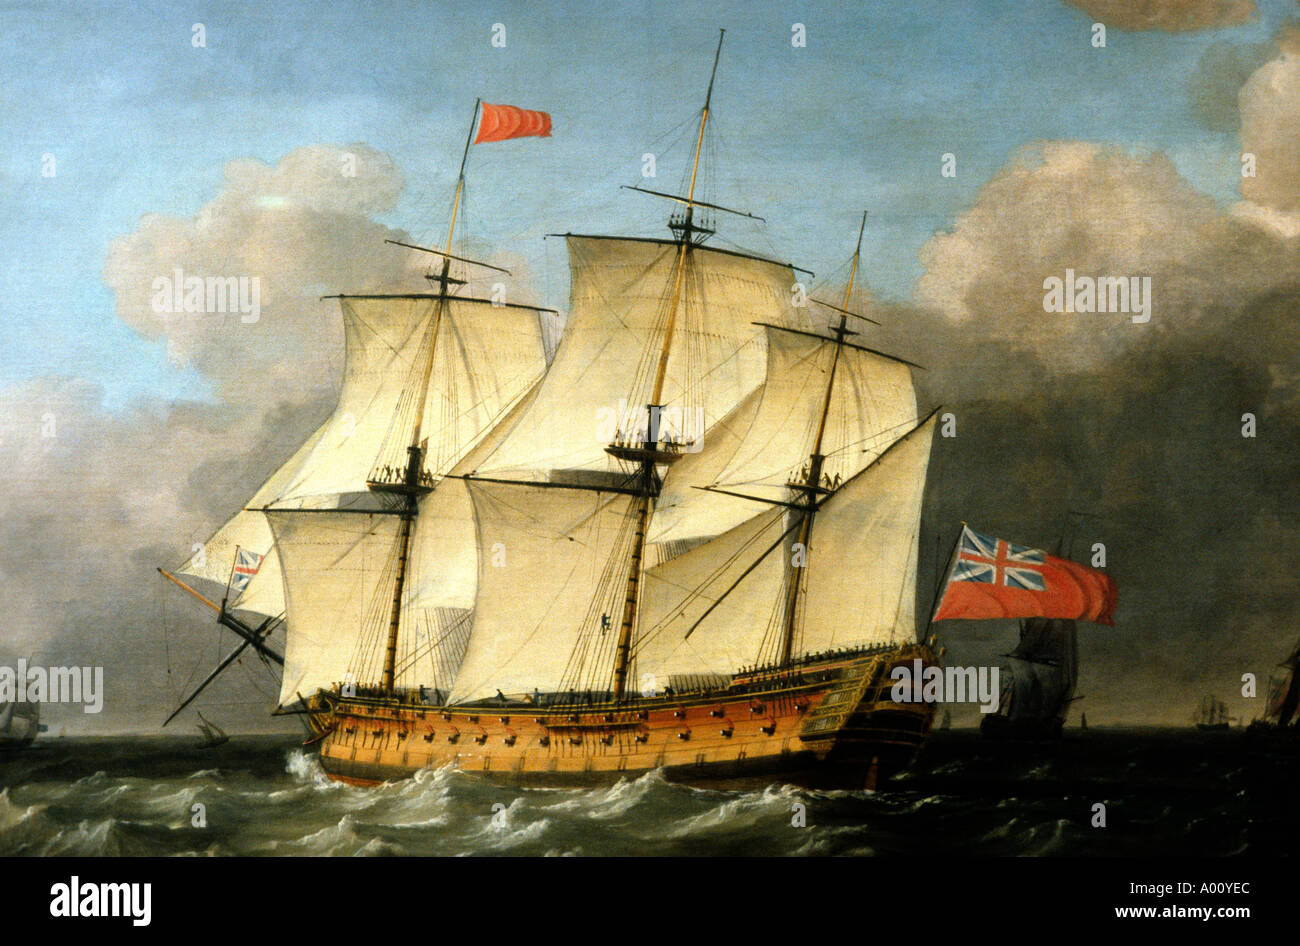 hms victory 1793 painting by swaine england uk admiral lord